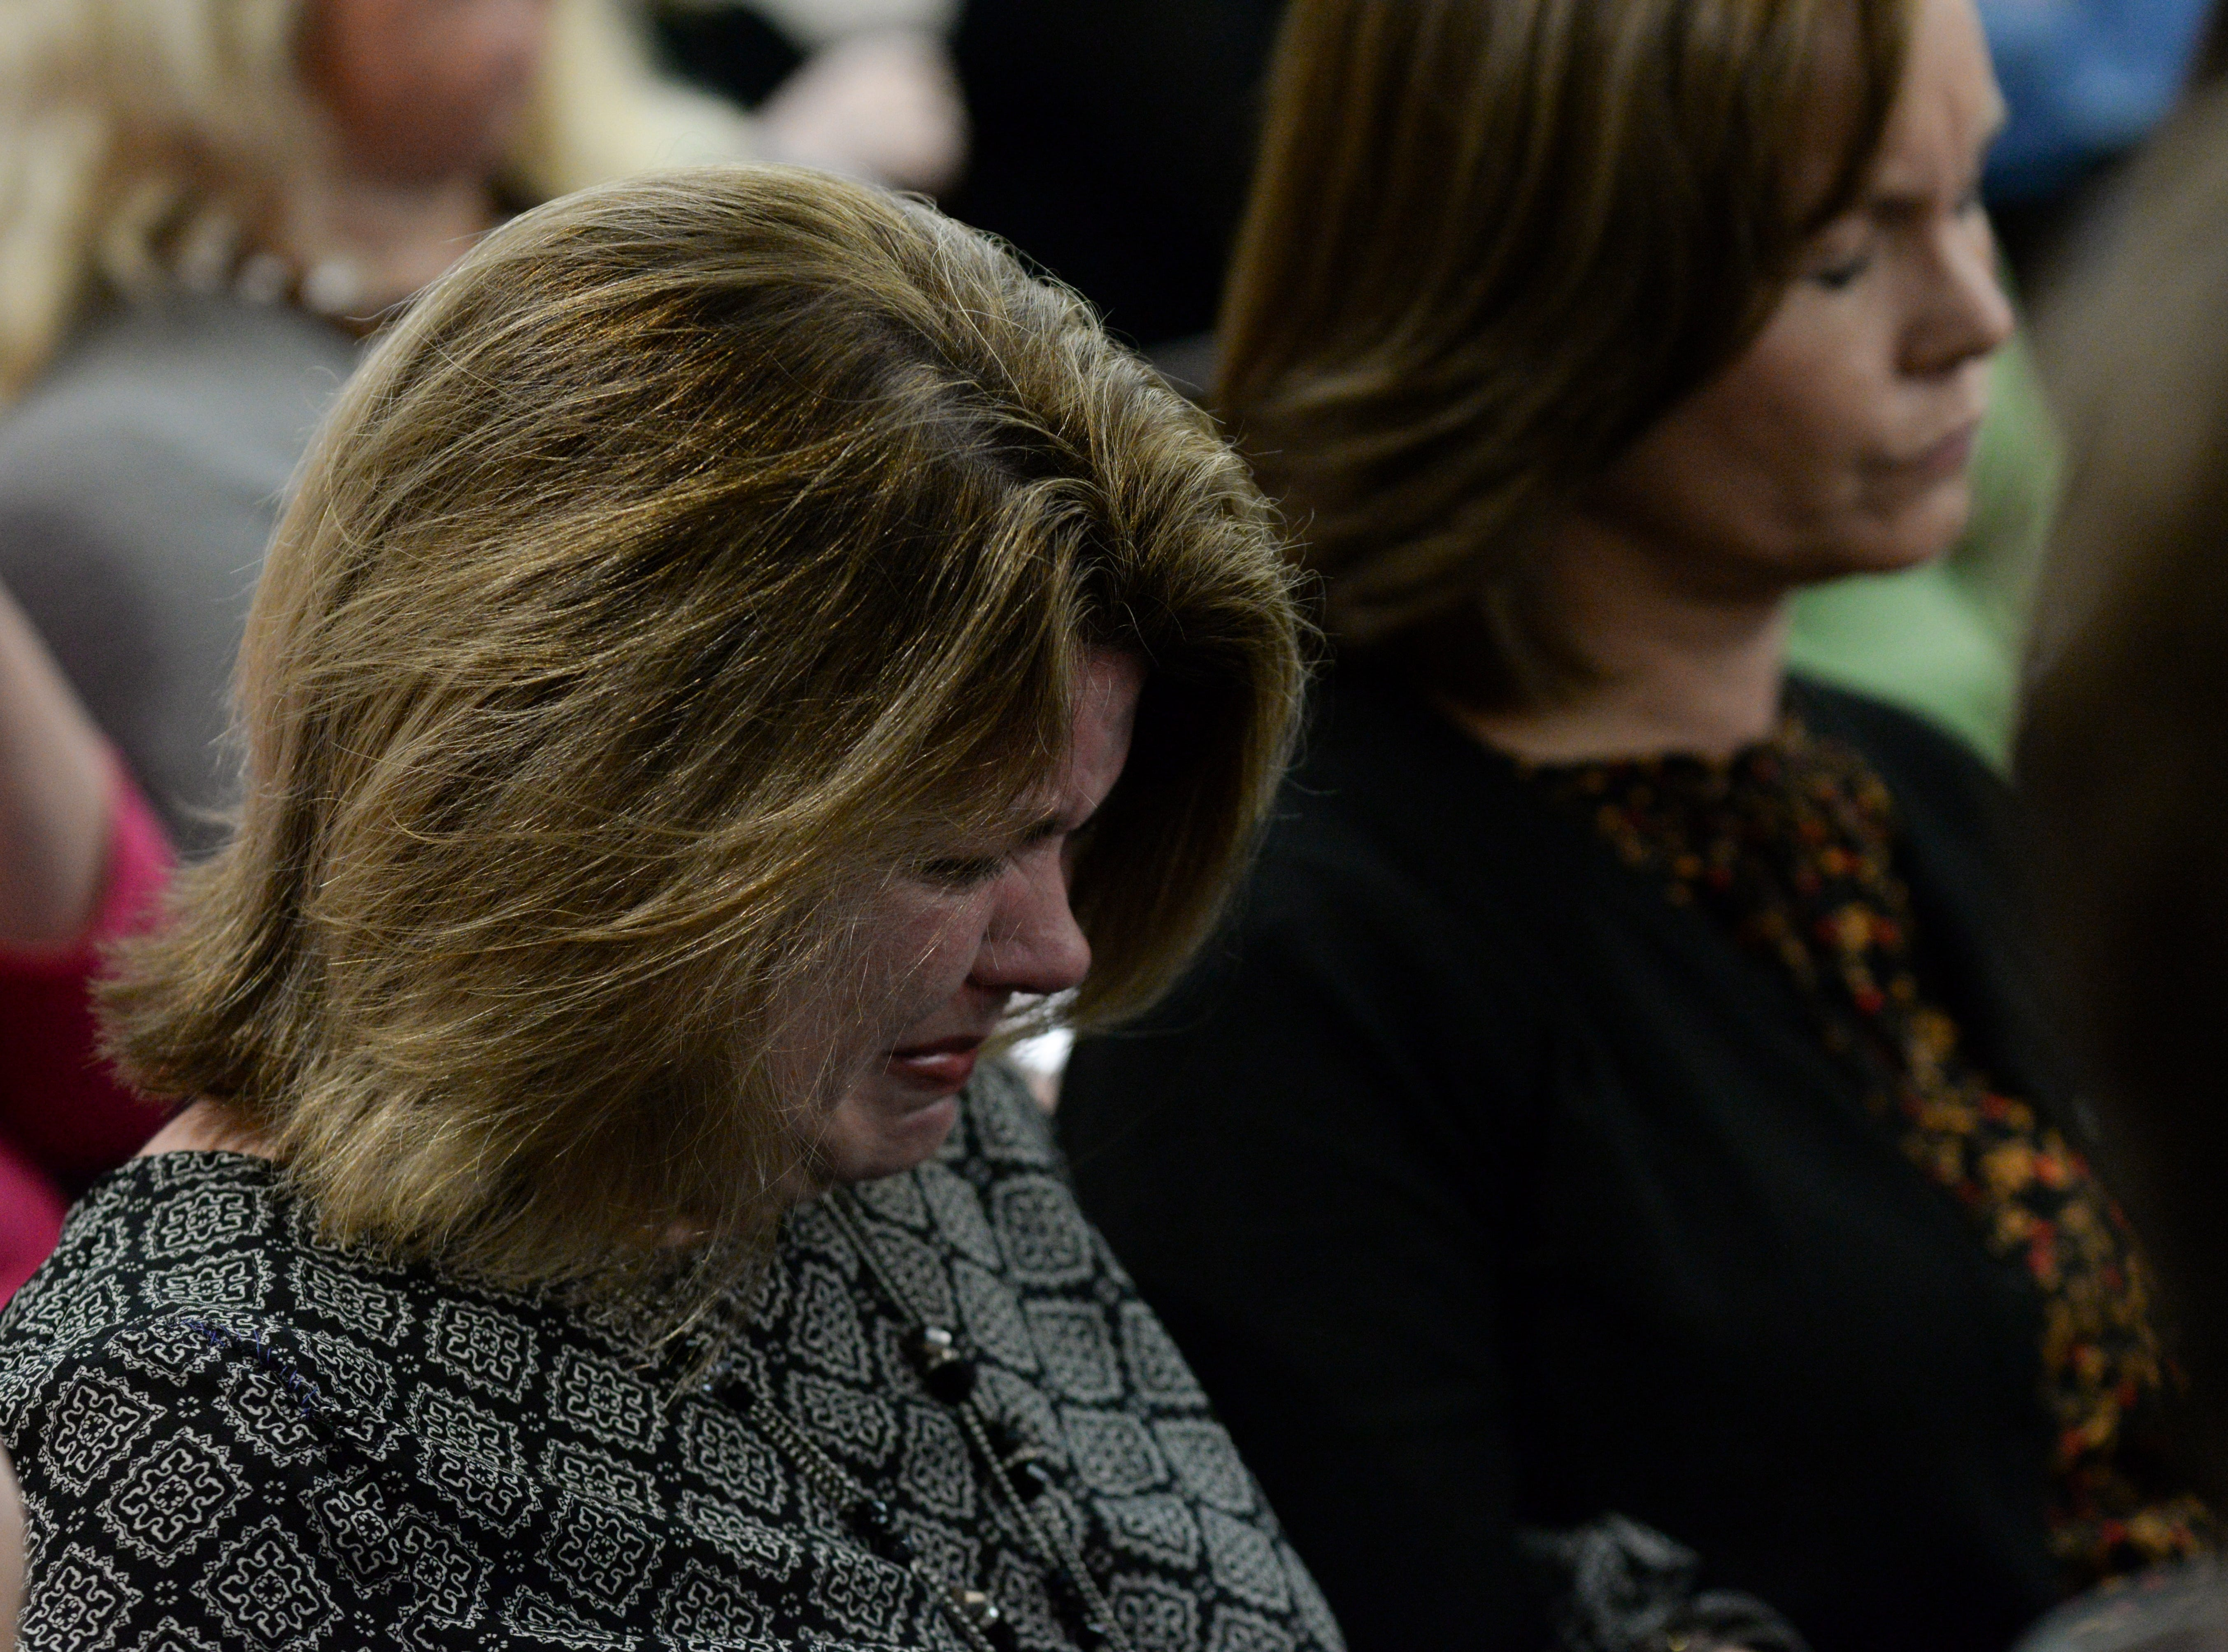 Lindsay Lockhart cries as Assistant State Attorney Jon Fuchs finishes his rebuttal in closing arguments during the trial of Denise Williams for the murder of her husband Mike Williams at the Leon County Courthouse Friday, Dec. 14, 2018.